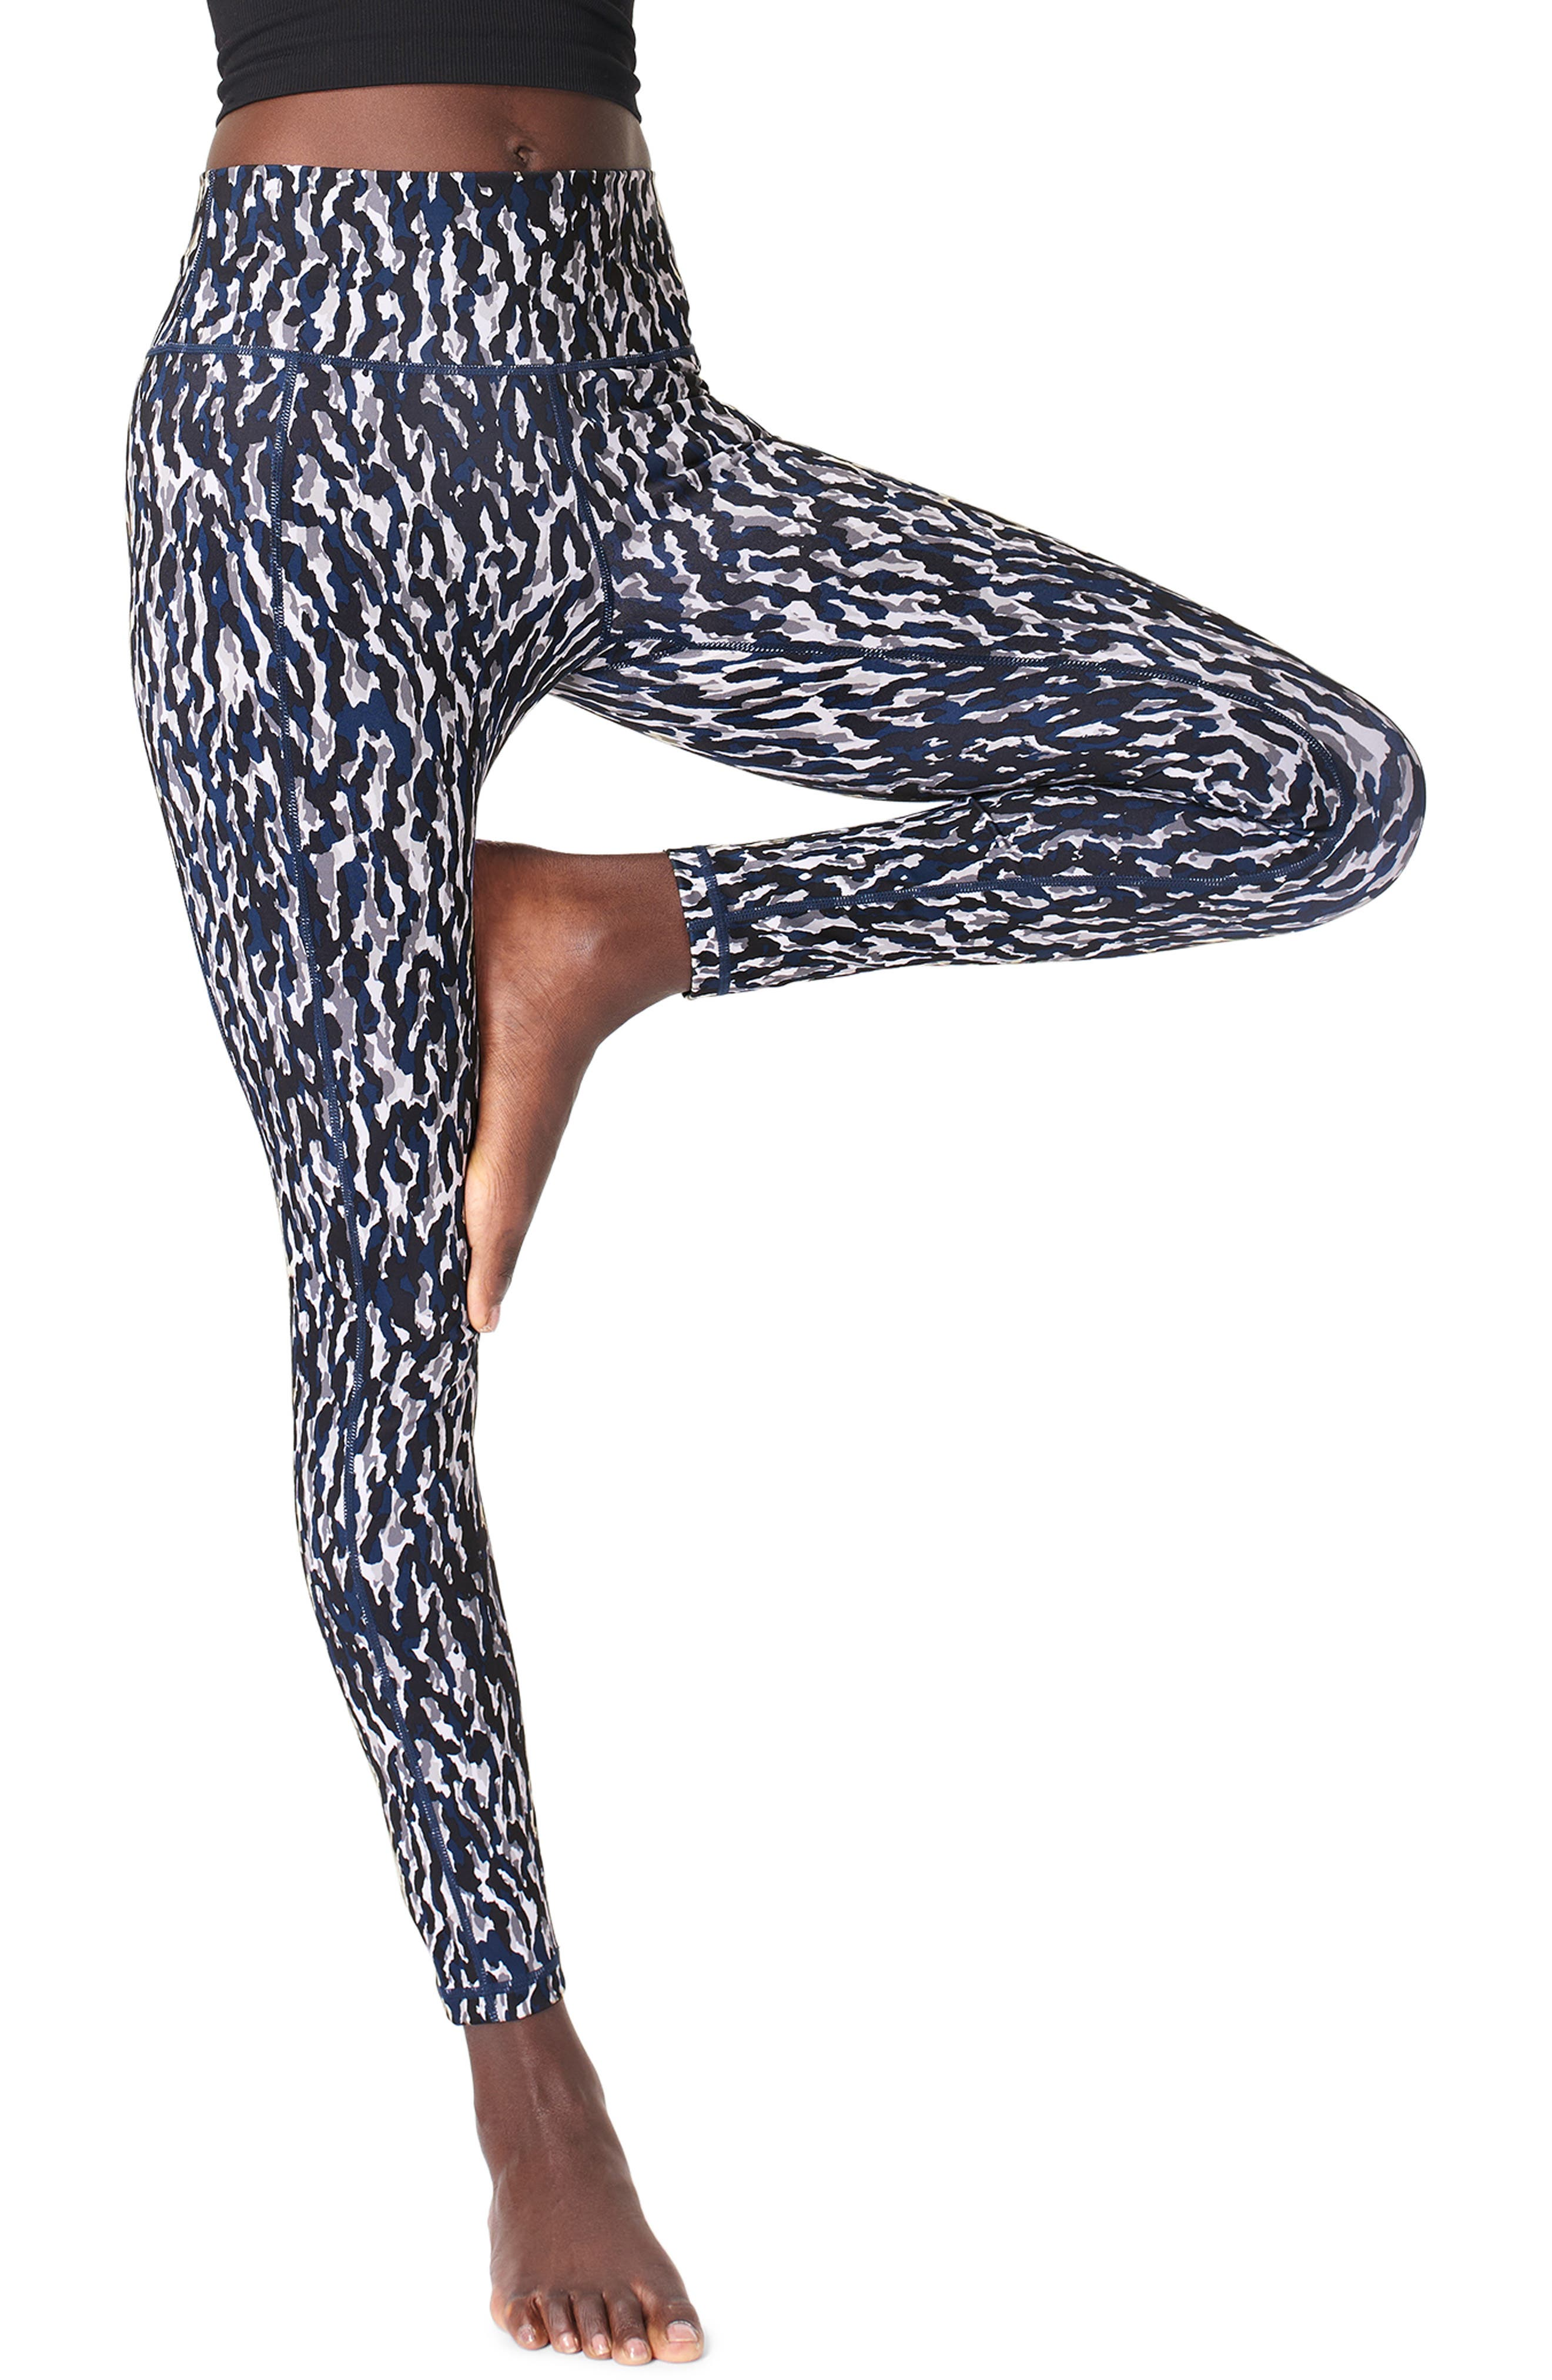 Designed with a comfortable high rise that supports your waist, these action-ready leggings are perfect for your next gym session or cycle class. Style Name: Sweaty Betty Super Sculpt 7/8 Leggings. Style Number: 5985457. Available in stores.